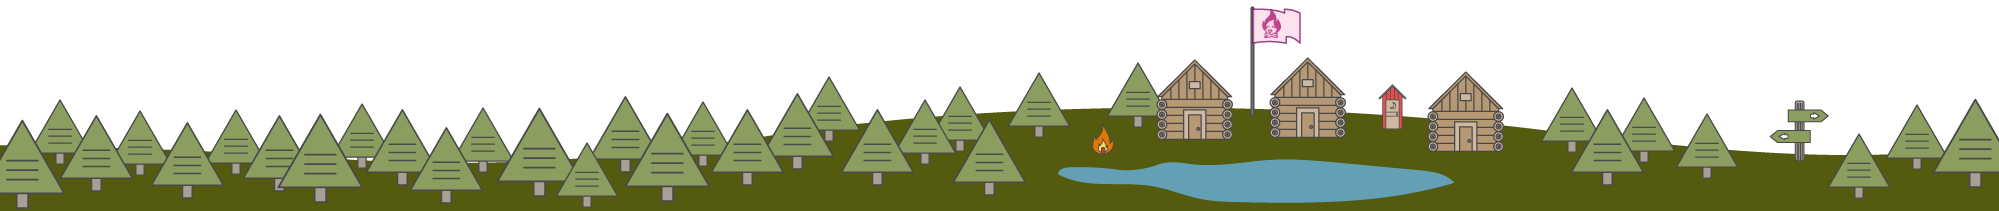 Camp Illustration